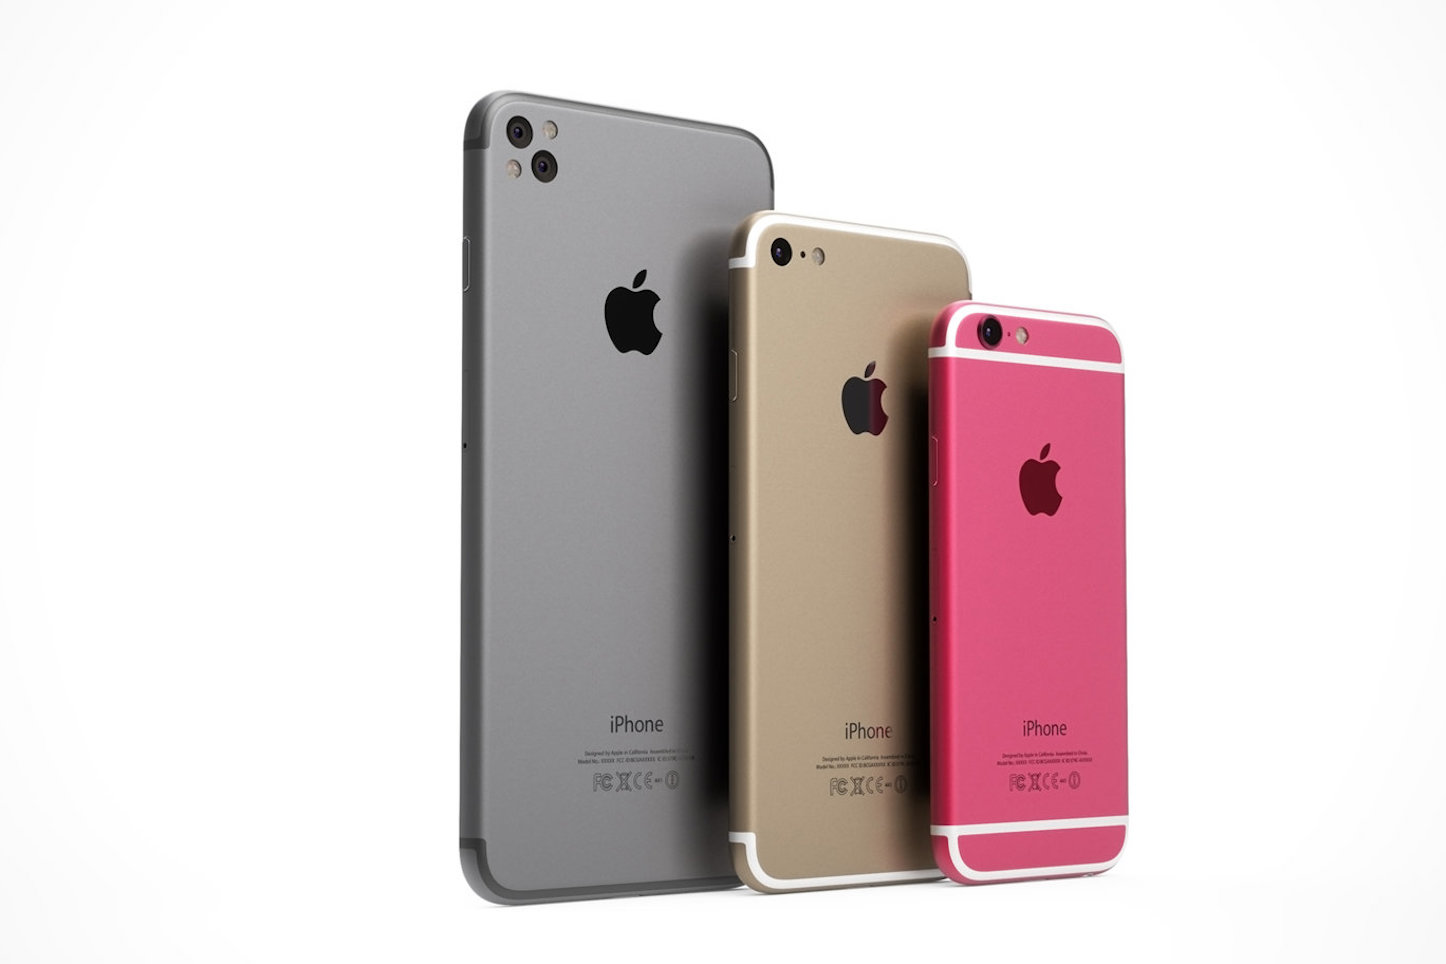 Iphone5se pink color concept image